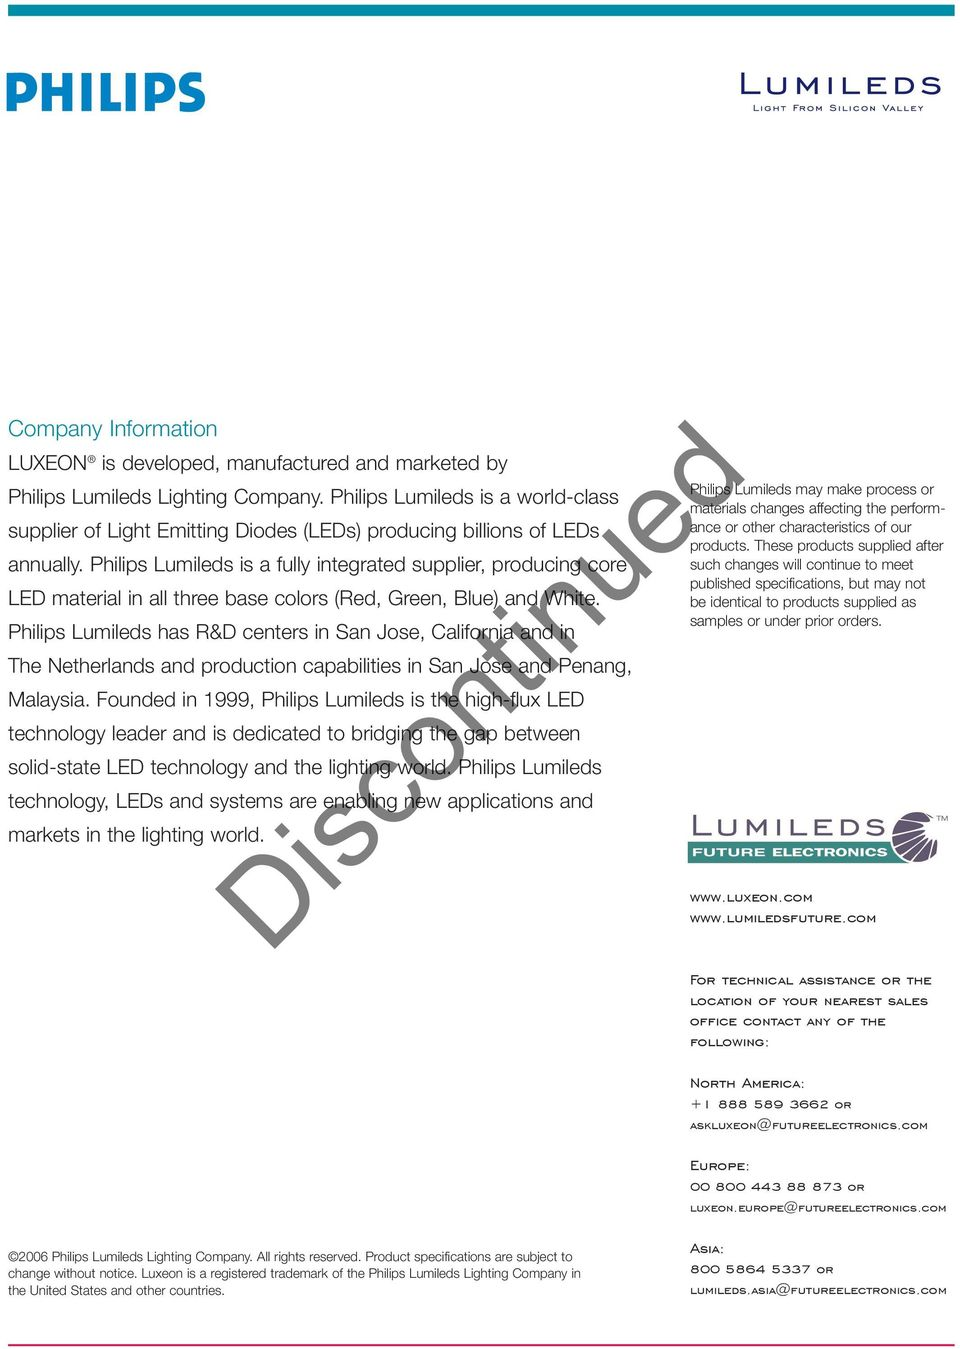 Philips Lumileds is a fully integrated supplier, producing core LED material in all three base colors (Red, Green, Blue) and White.